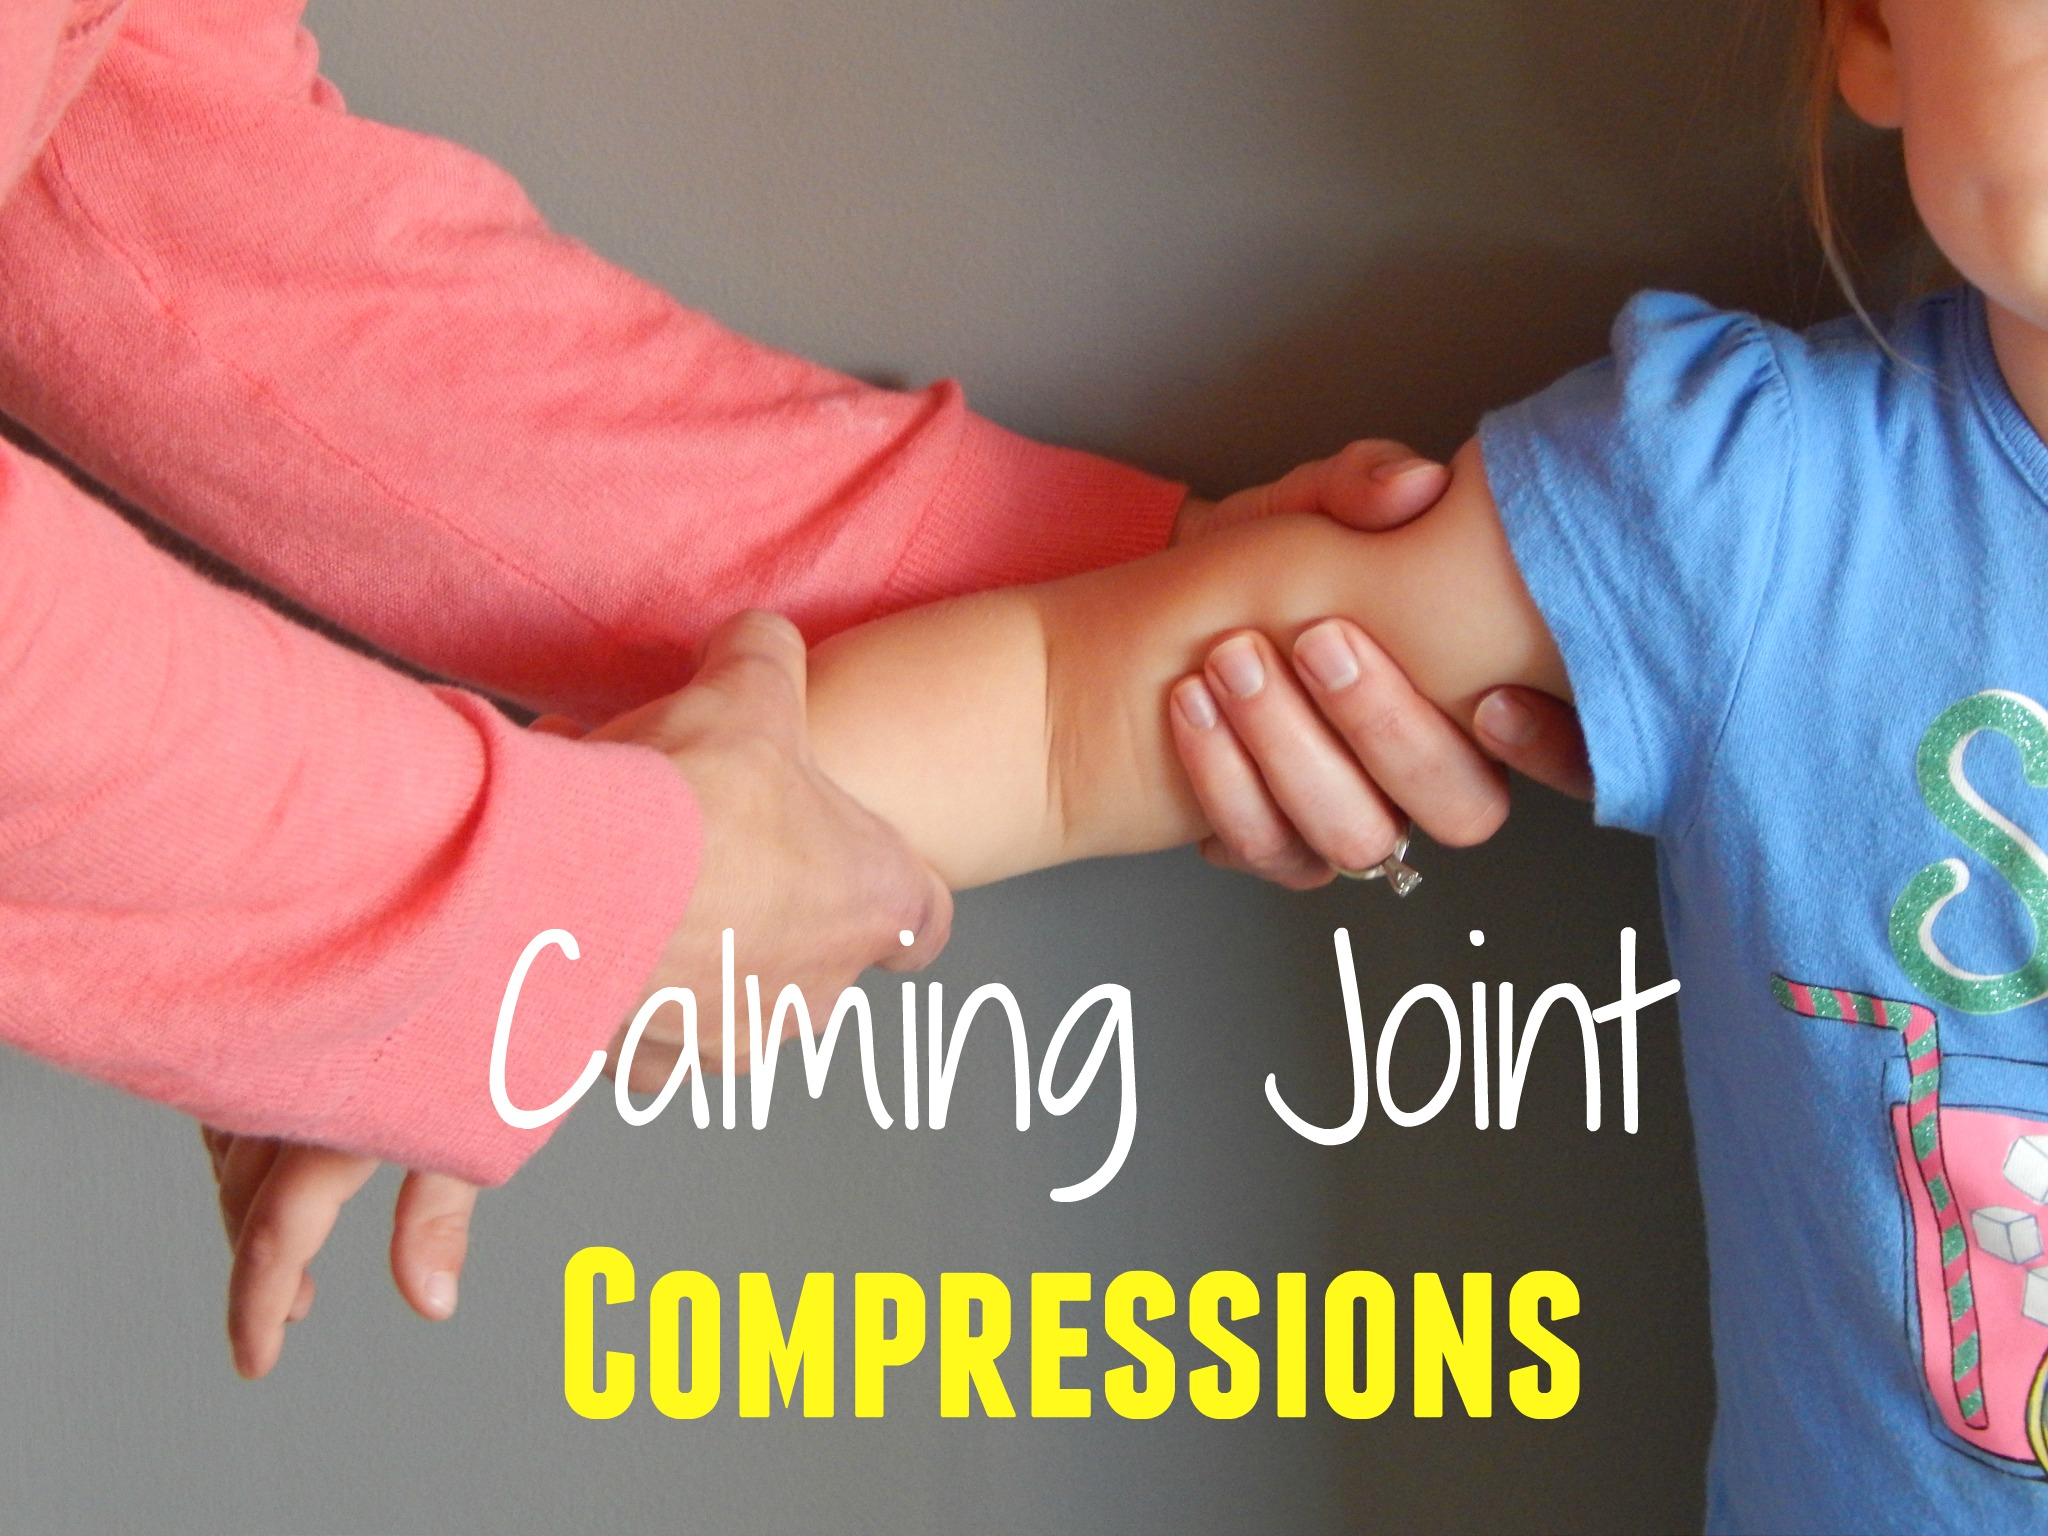 Joint Compressions For Calming